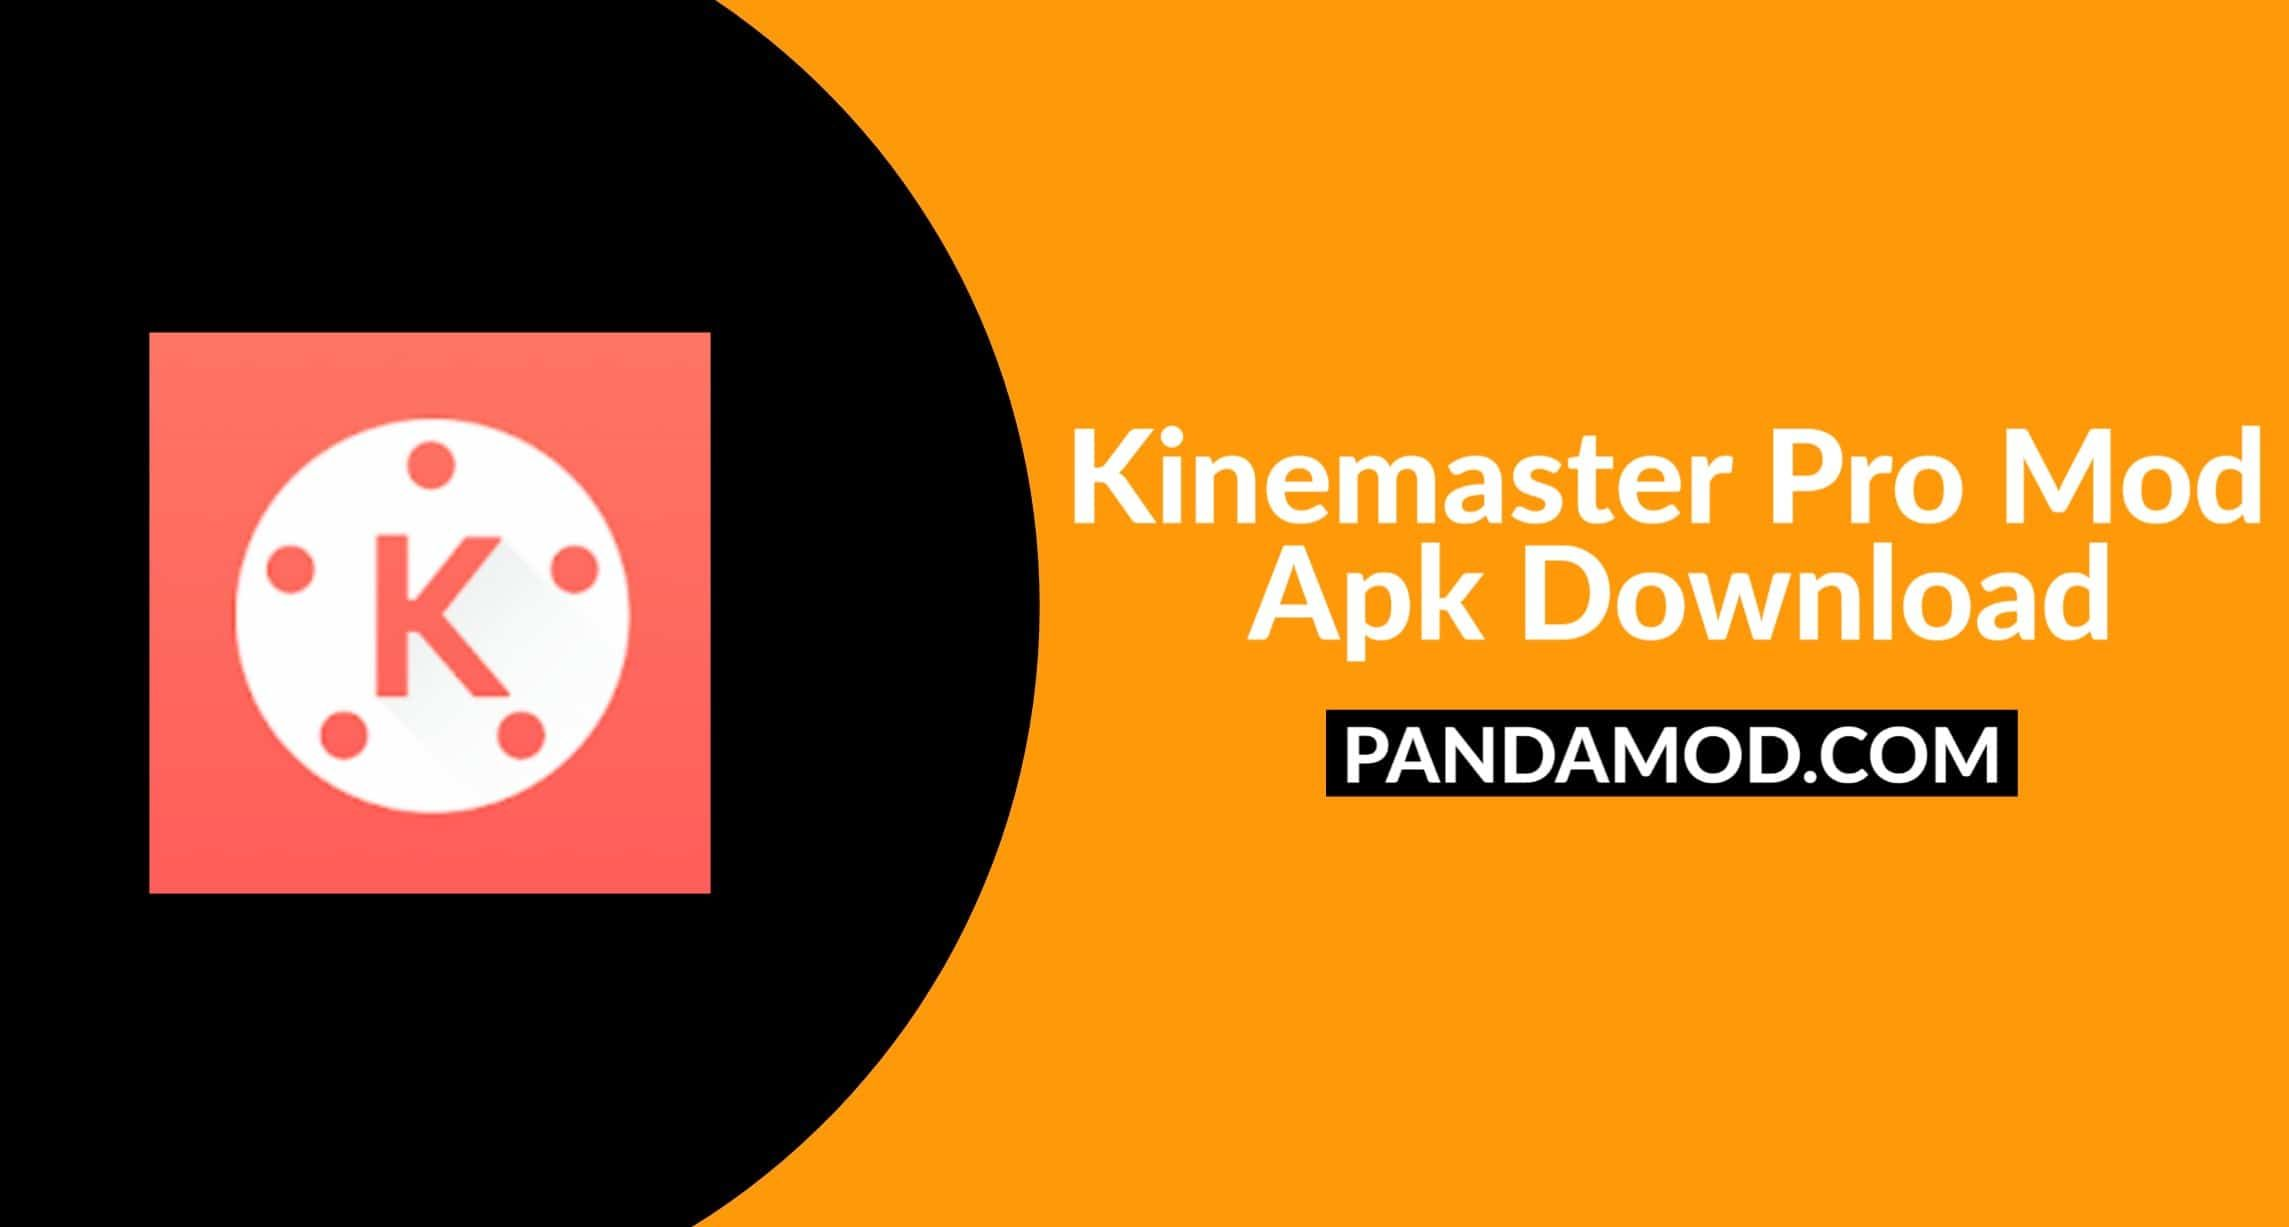 Kinemaster Pro Mod Apk Download Latest Version For Android